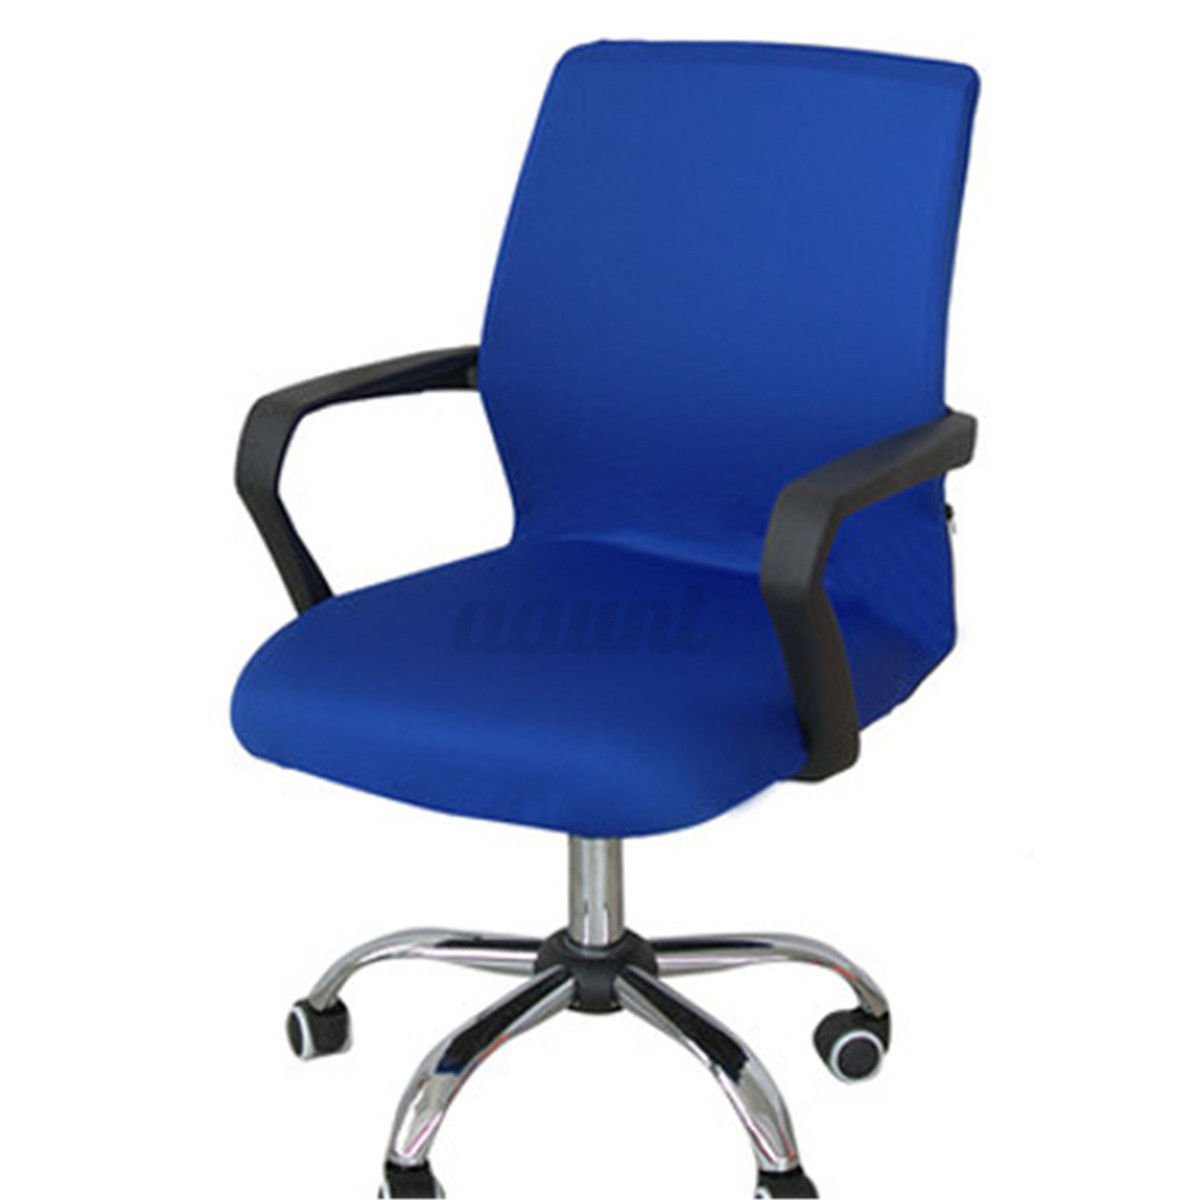 purple dining chair covers for back pain relief india swivel computer cover stretch office armchair